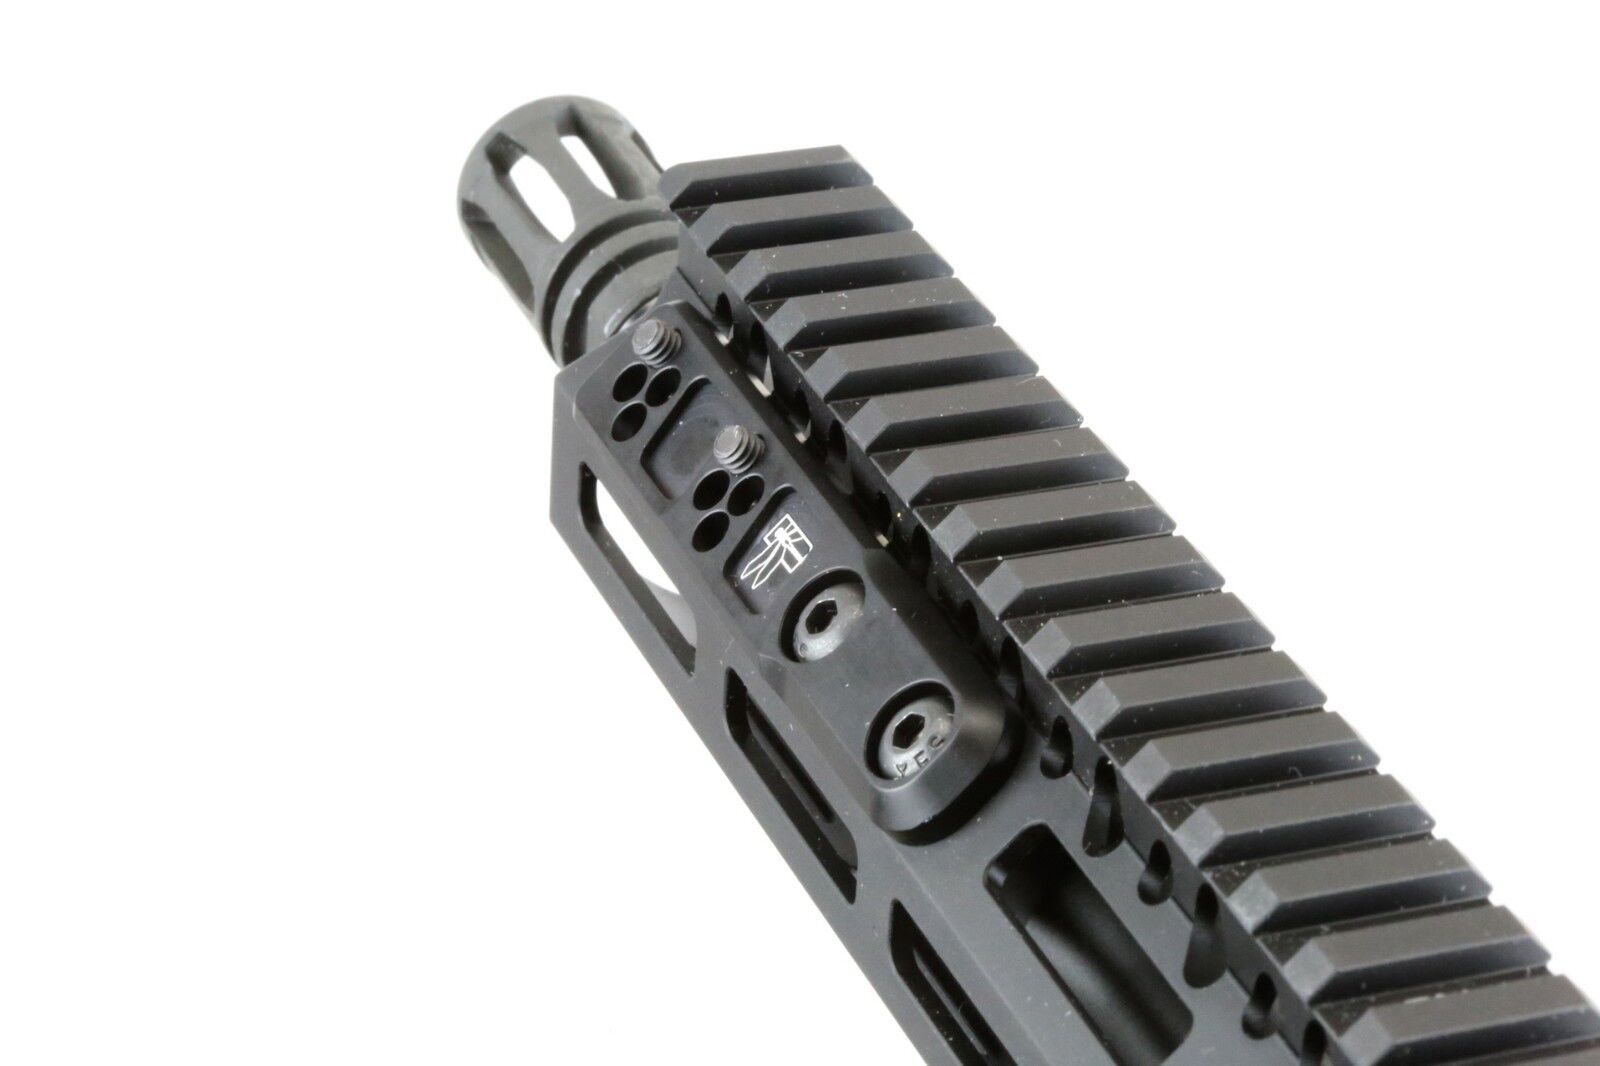 Haley Strategic Thorntail6 M-LOK® Offset Light Mount by Impact Weapons